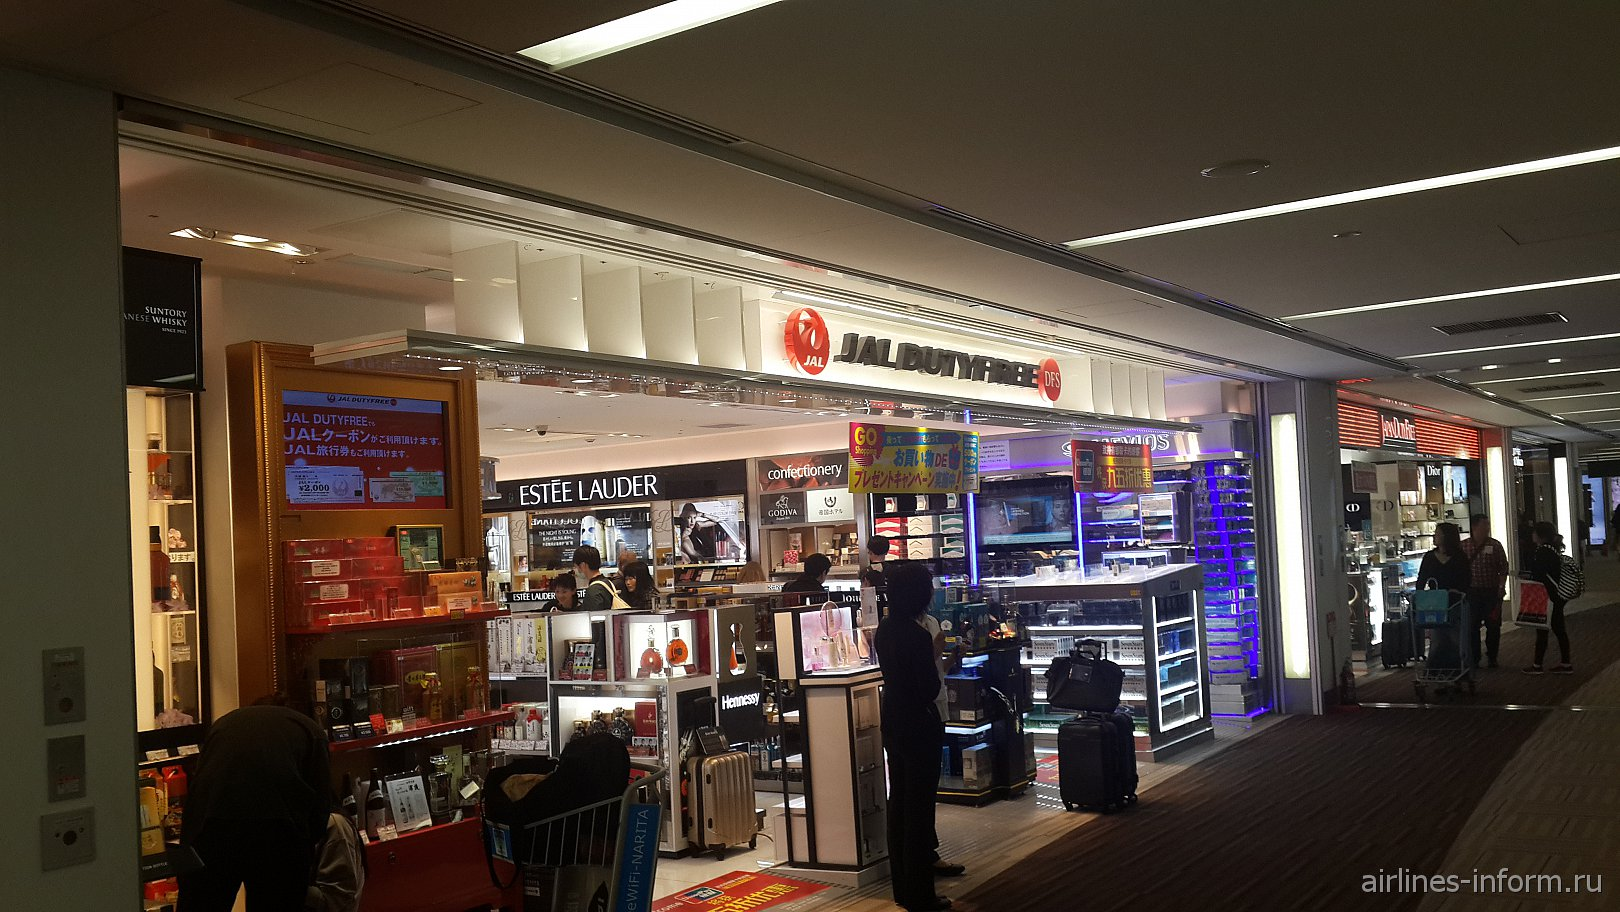 ������� JAL Duty Free � ��������� ����� ������